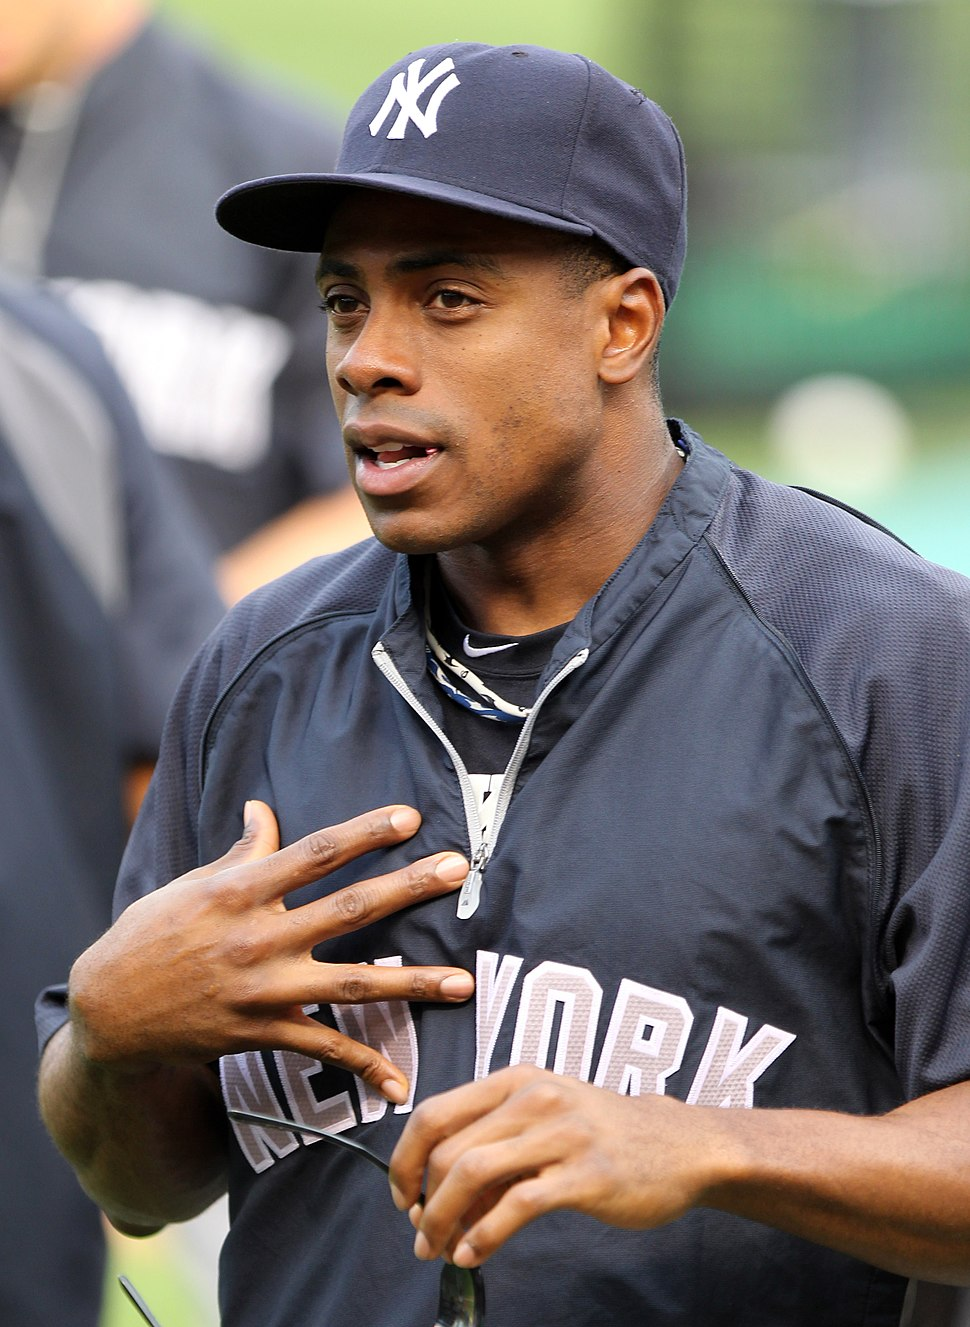 Curtis Granderson on August 26, 2011